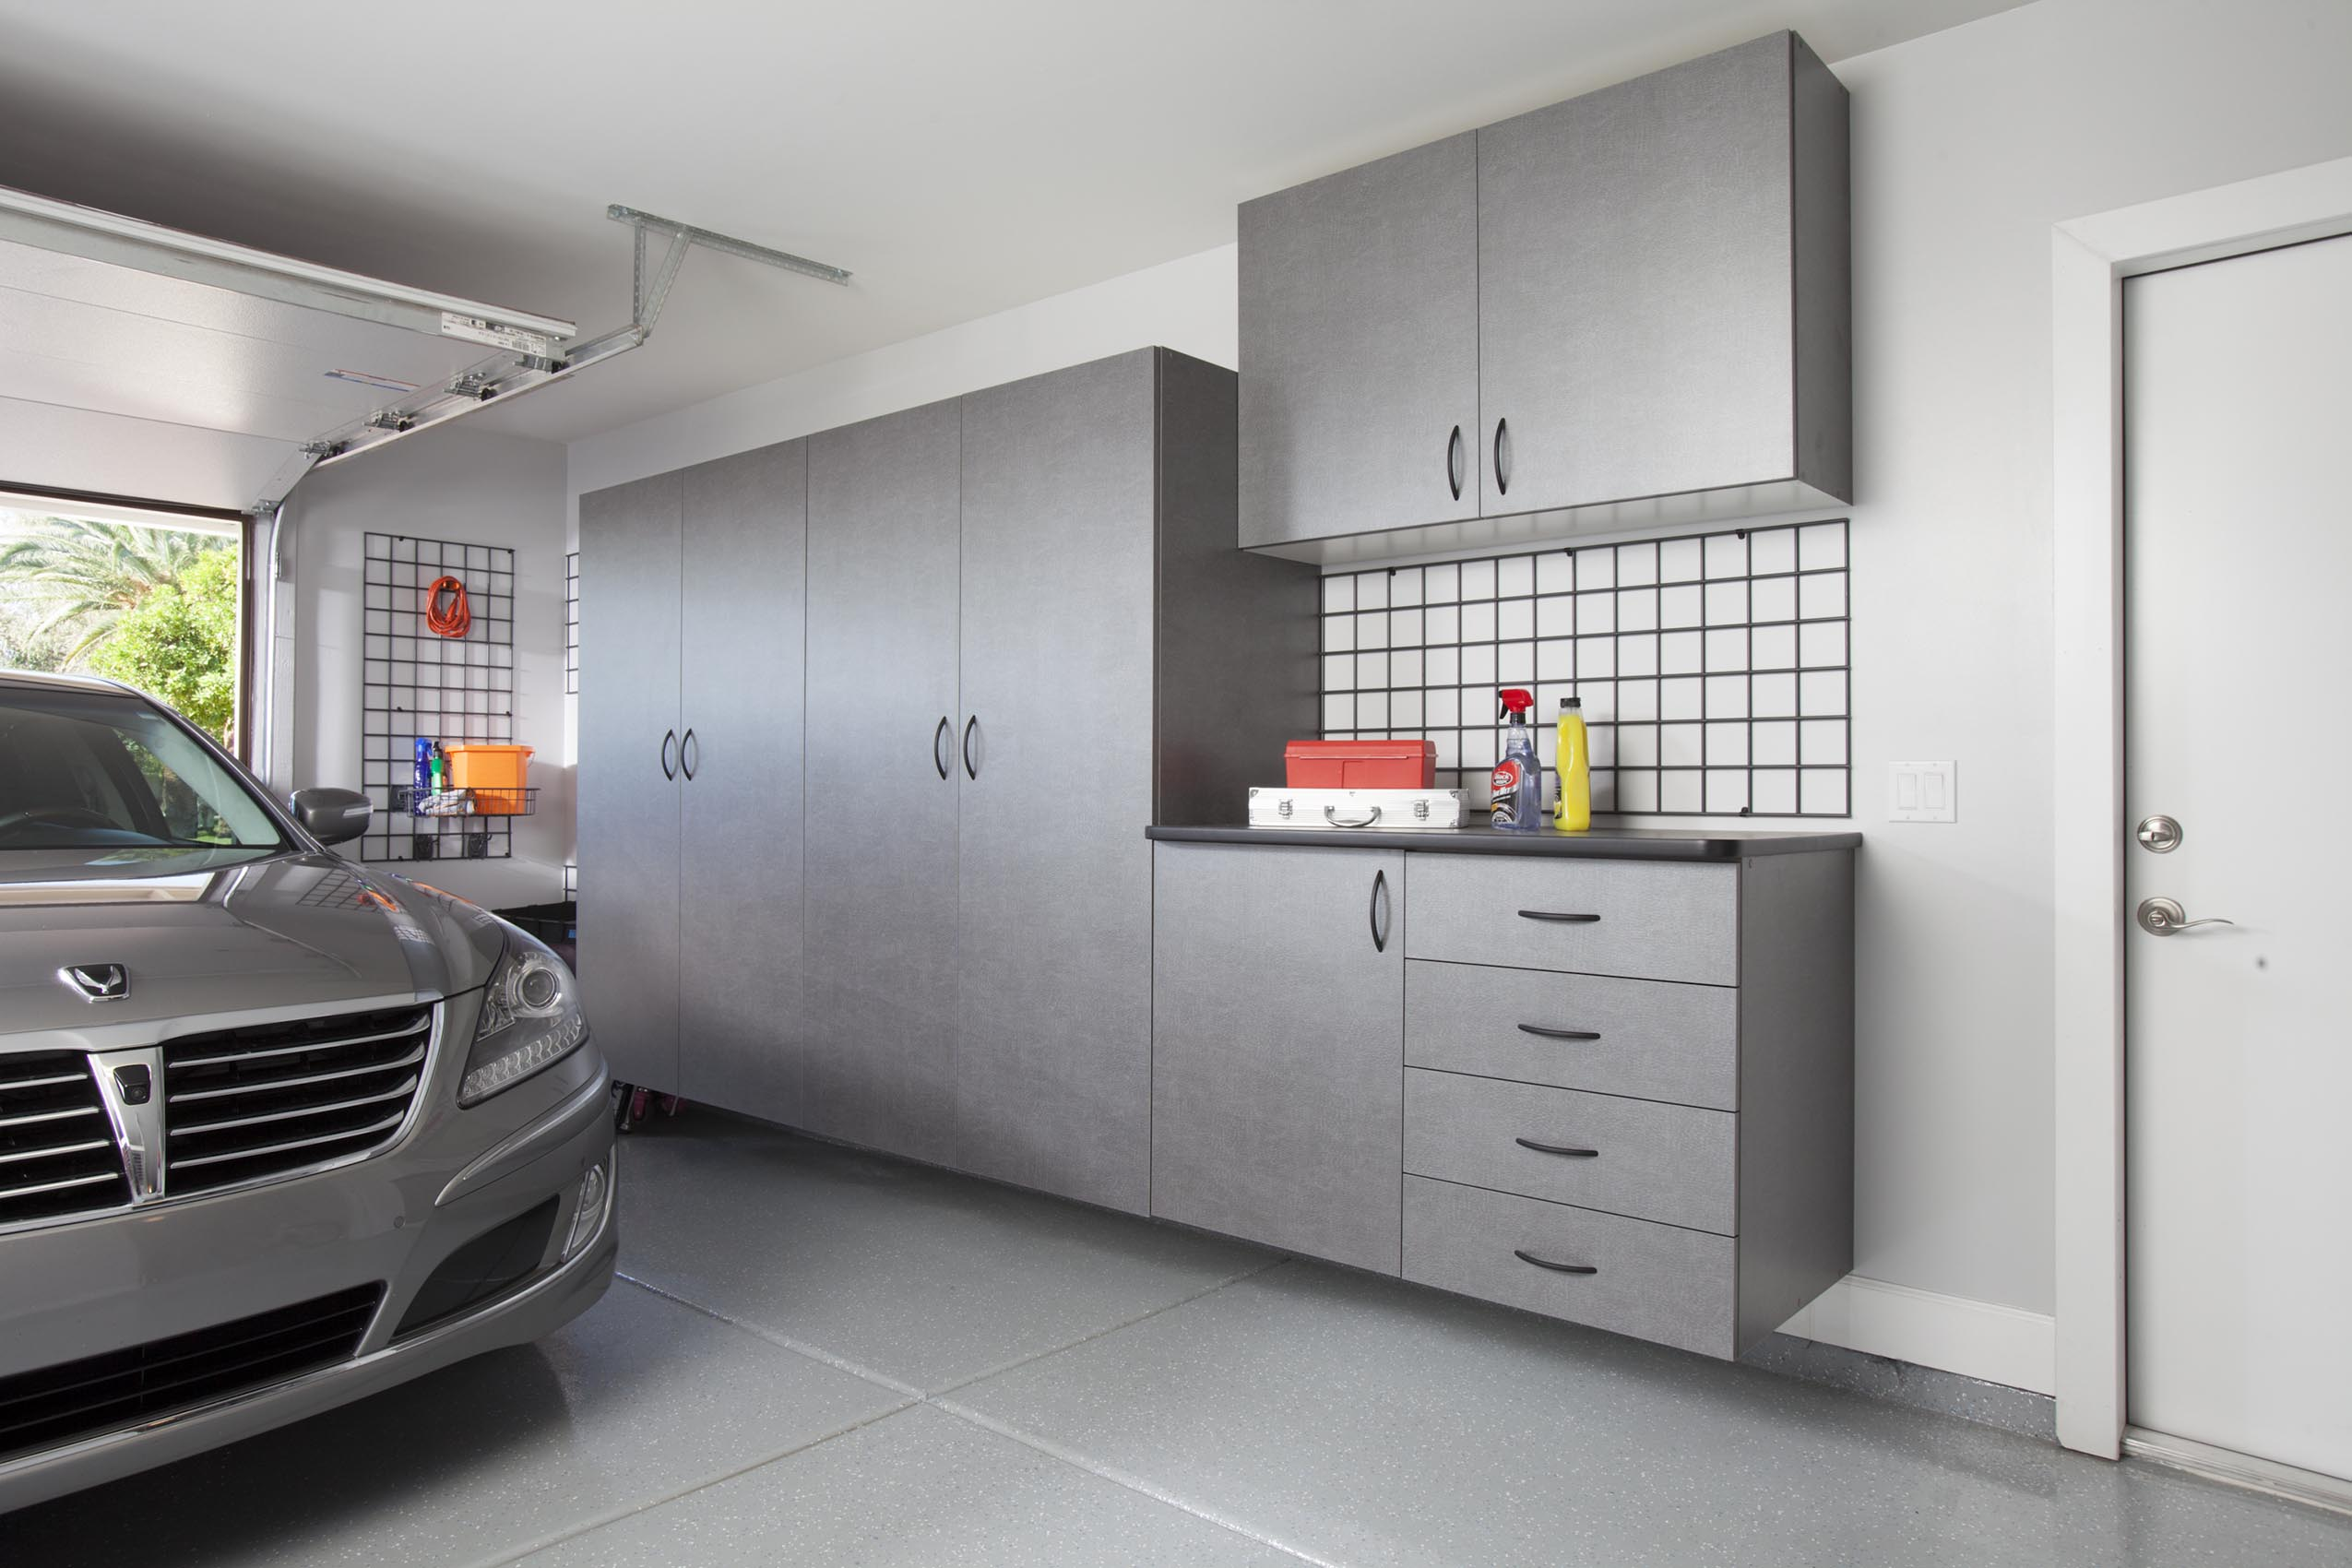 Pewter Cabinets with Workbench